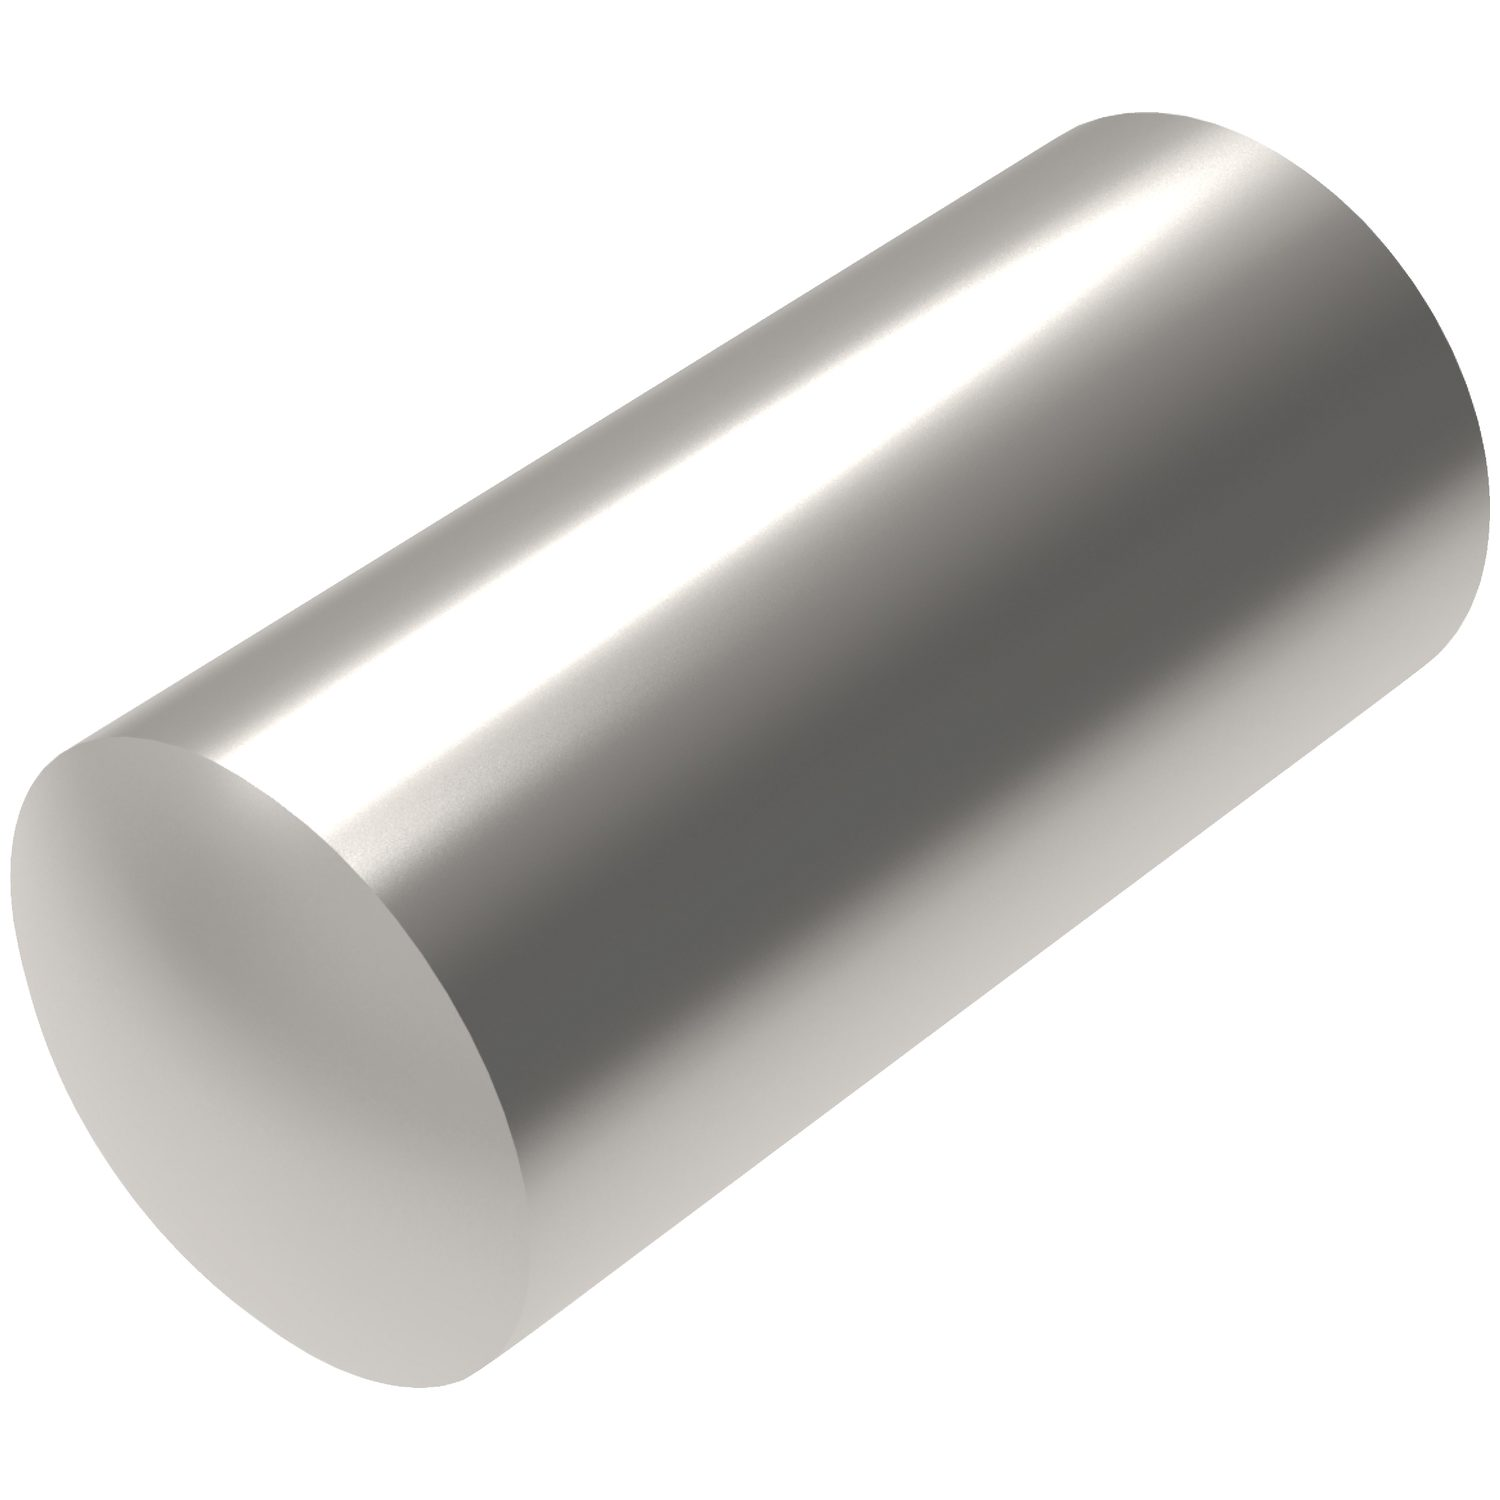 P1207 - Stainless Dowel Pins